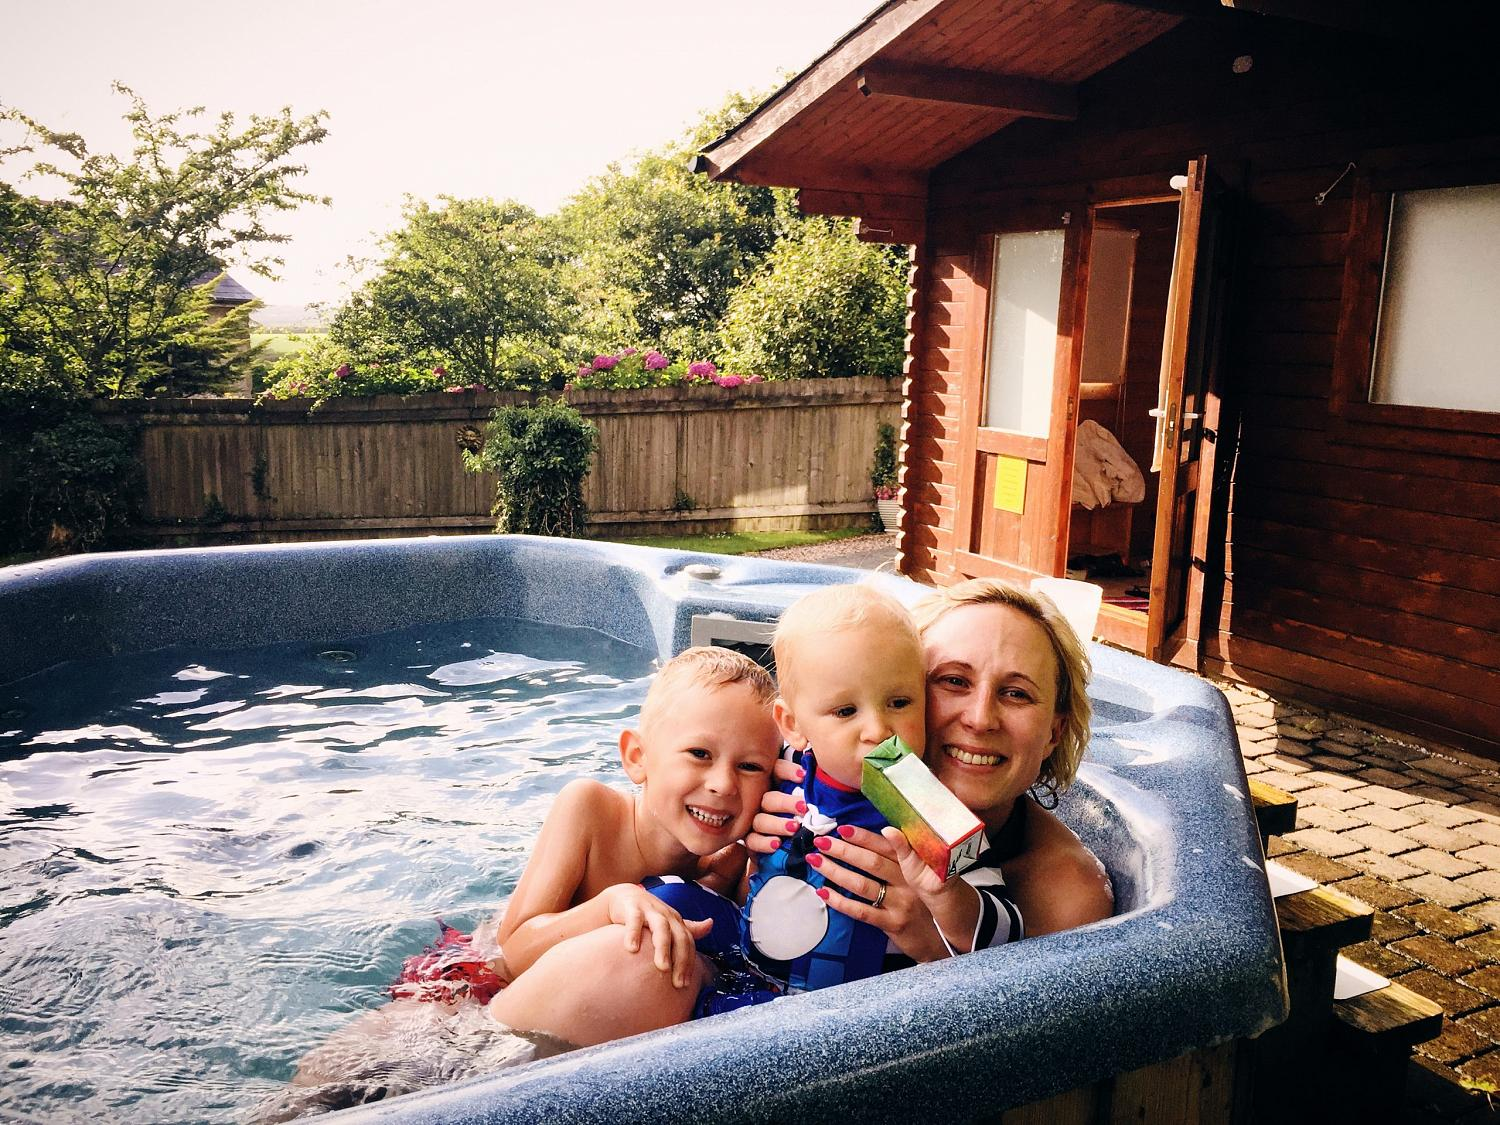 A mother and her sons in a hot tub